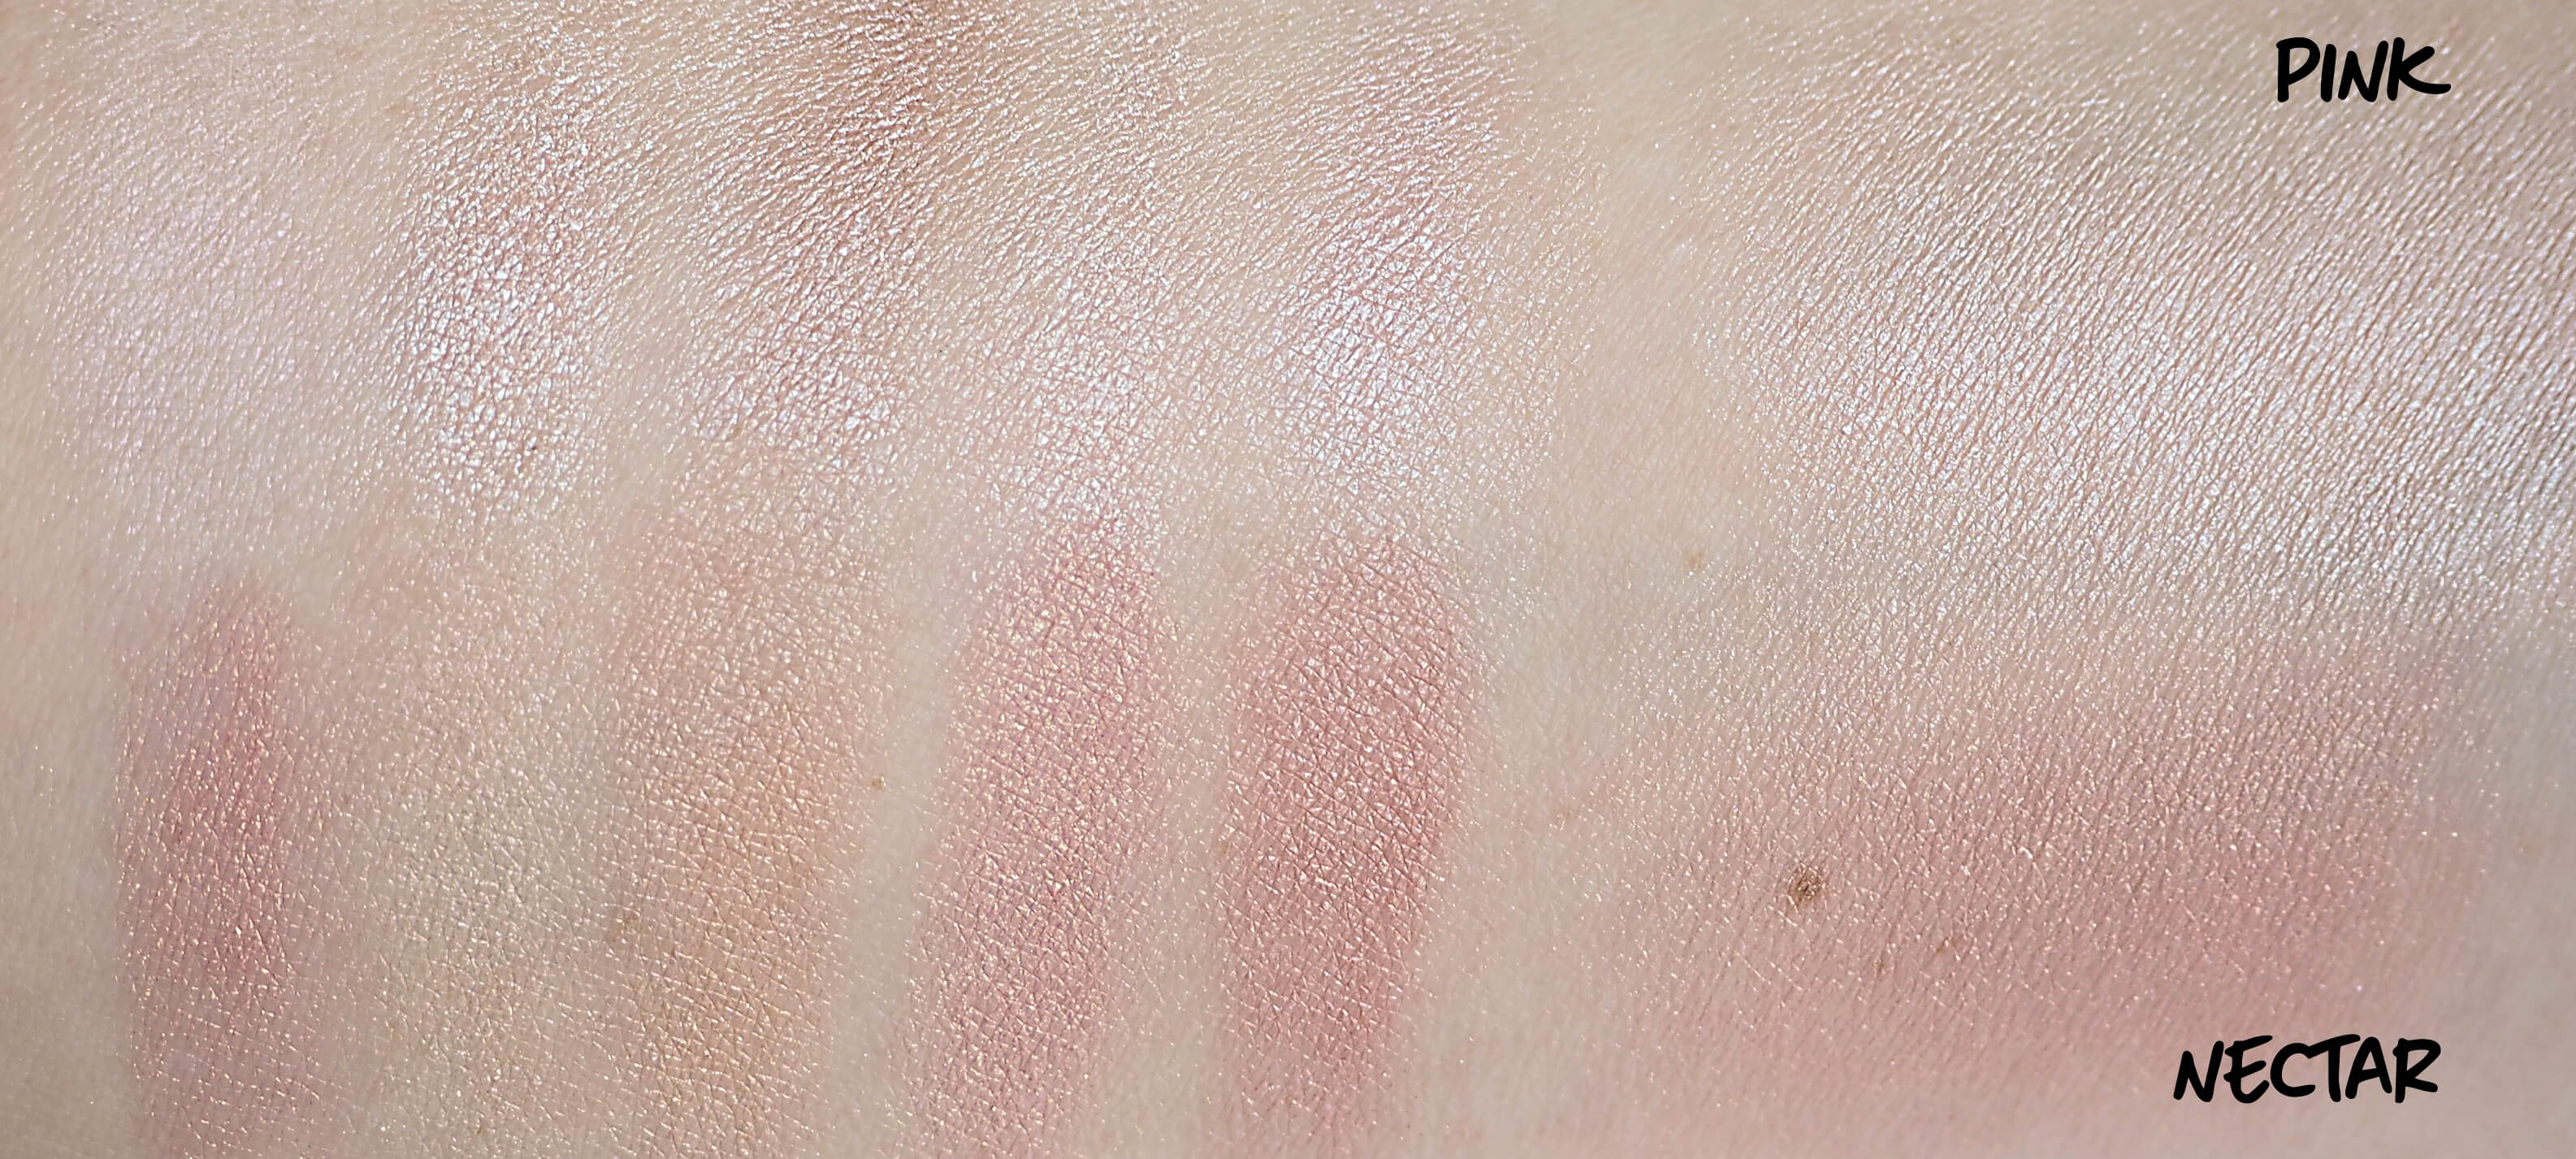 NECTAR i PINK SHIMMER BRICK swatches